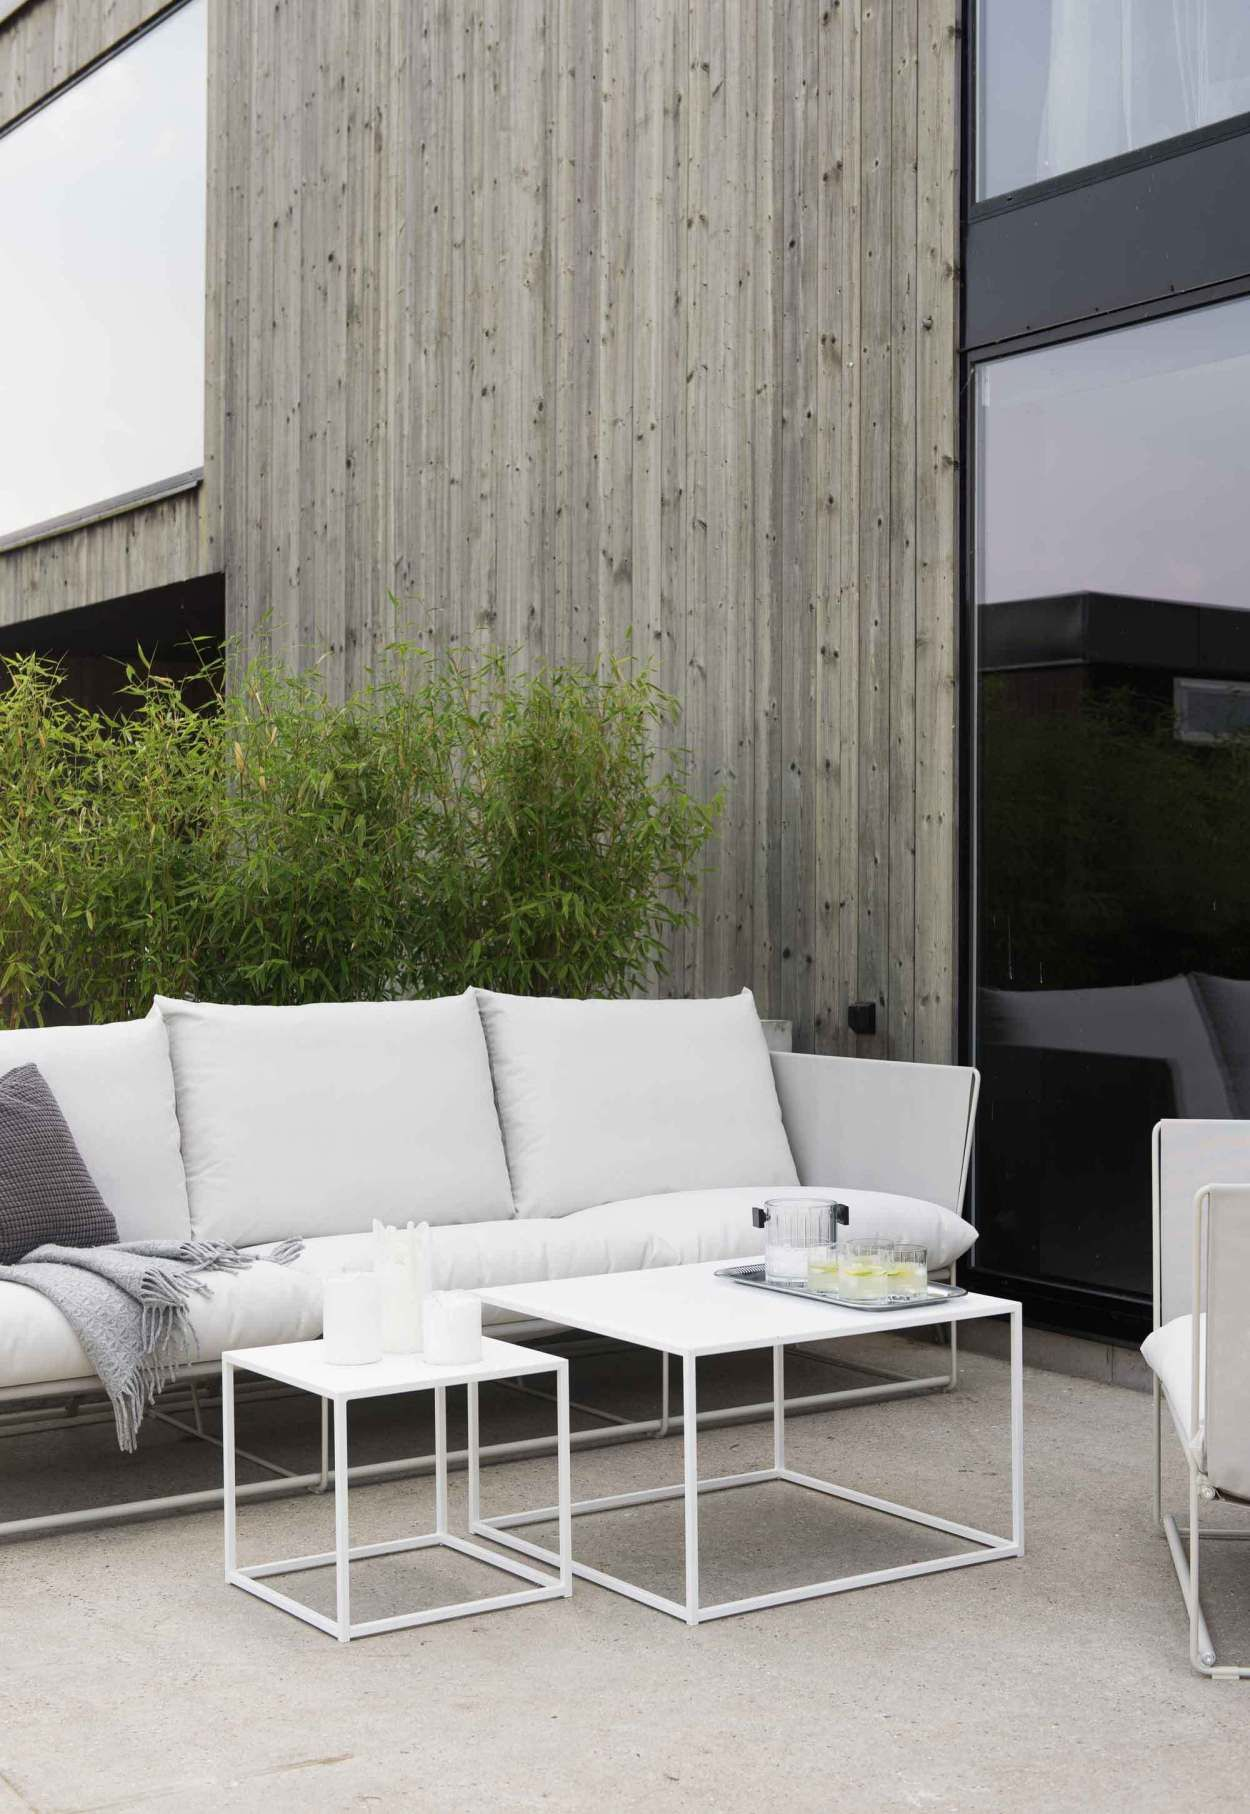 Six Places To Source Minimalist Garden Furniture Minimalist Garden Diy Garden Furniture Minimalist Outdoor Furniture